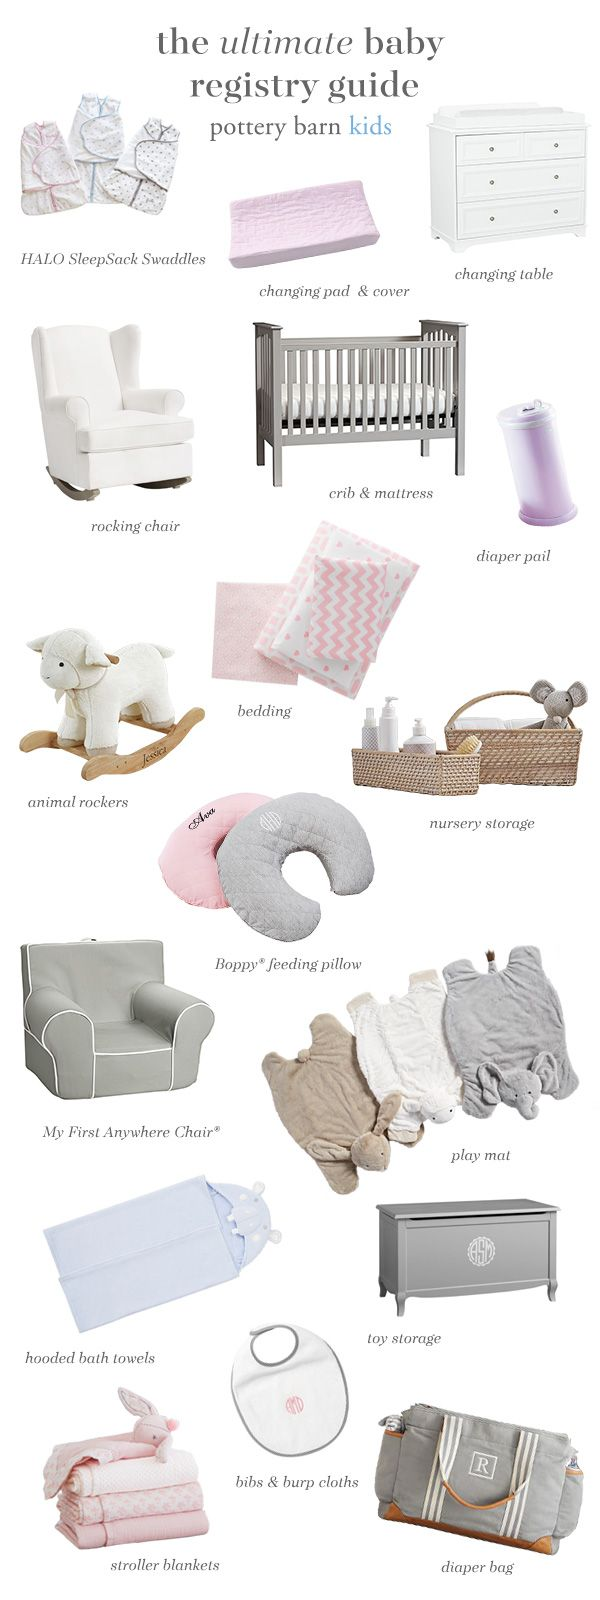 25 best baby registry checklist ideas on pinterest baby list register at pottery barn kids to create a welcoming nursery and home for baby free design services gorgeous style and a completion discount are just